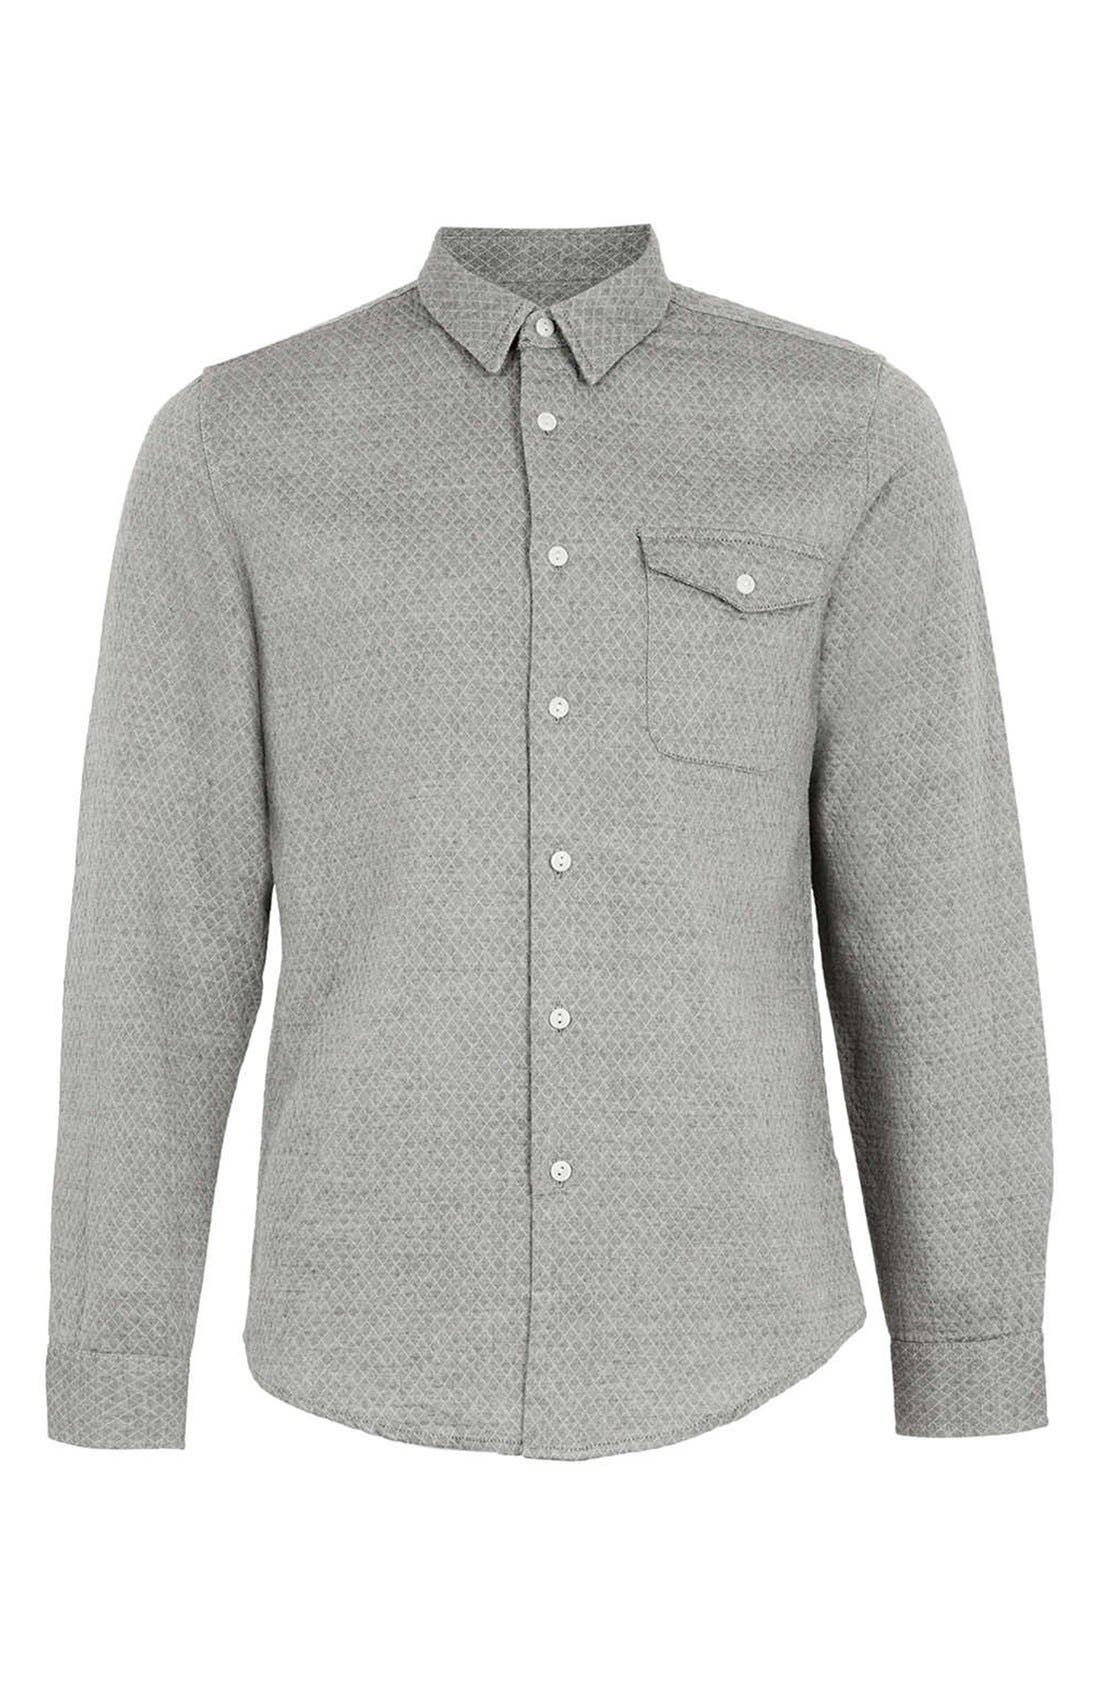 Main Image - Topman Quilted Shirt